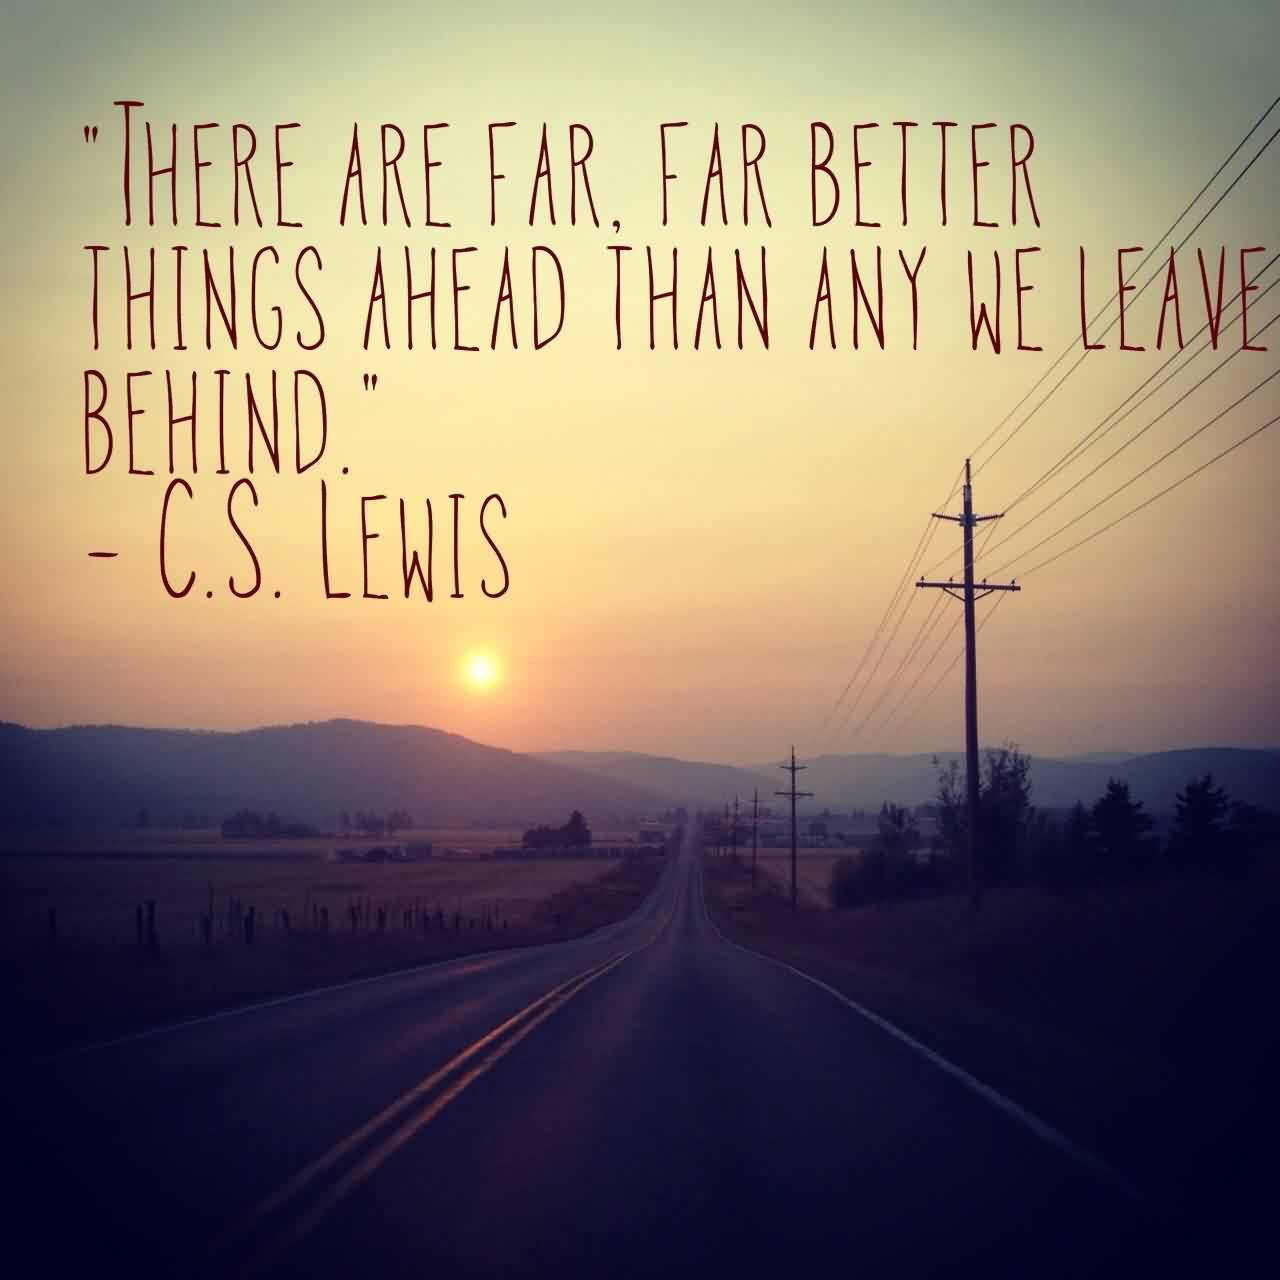 Best Life Quote Tumblr-There are far better things ahead